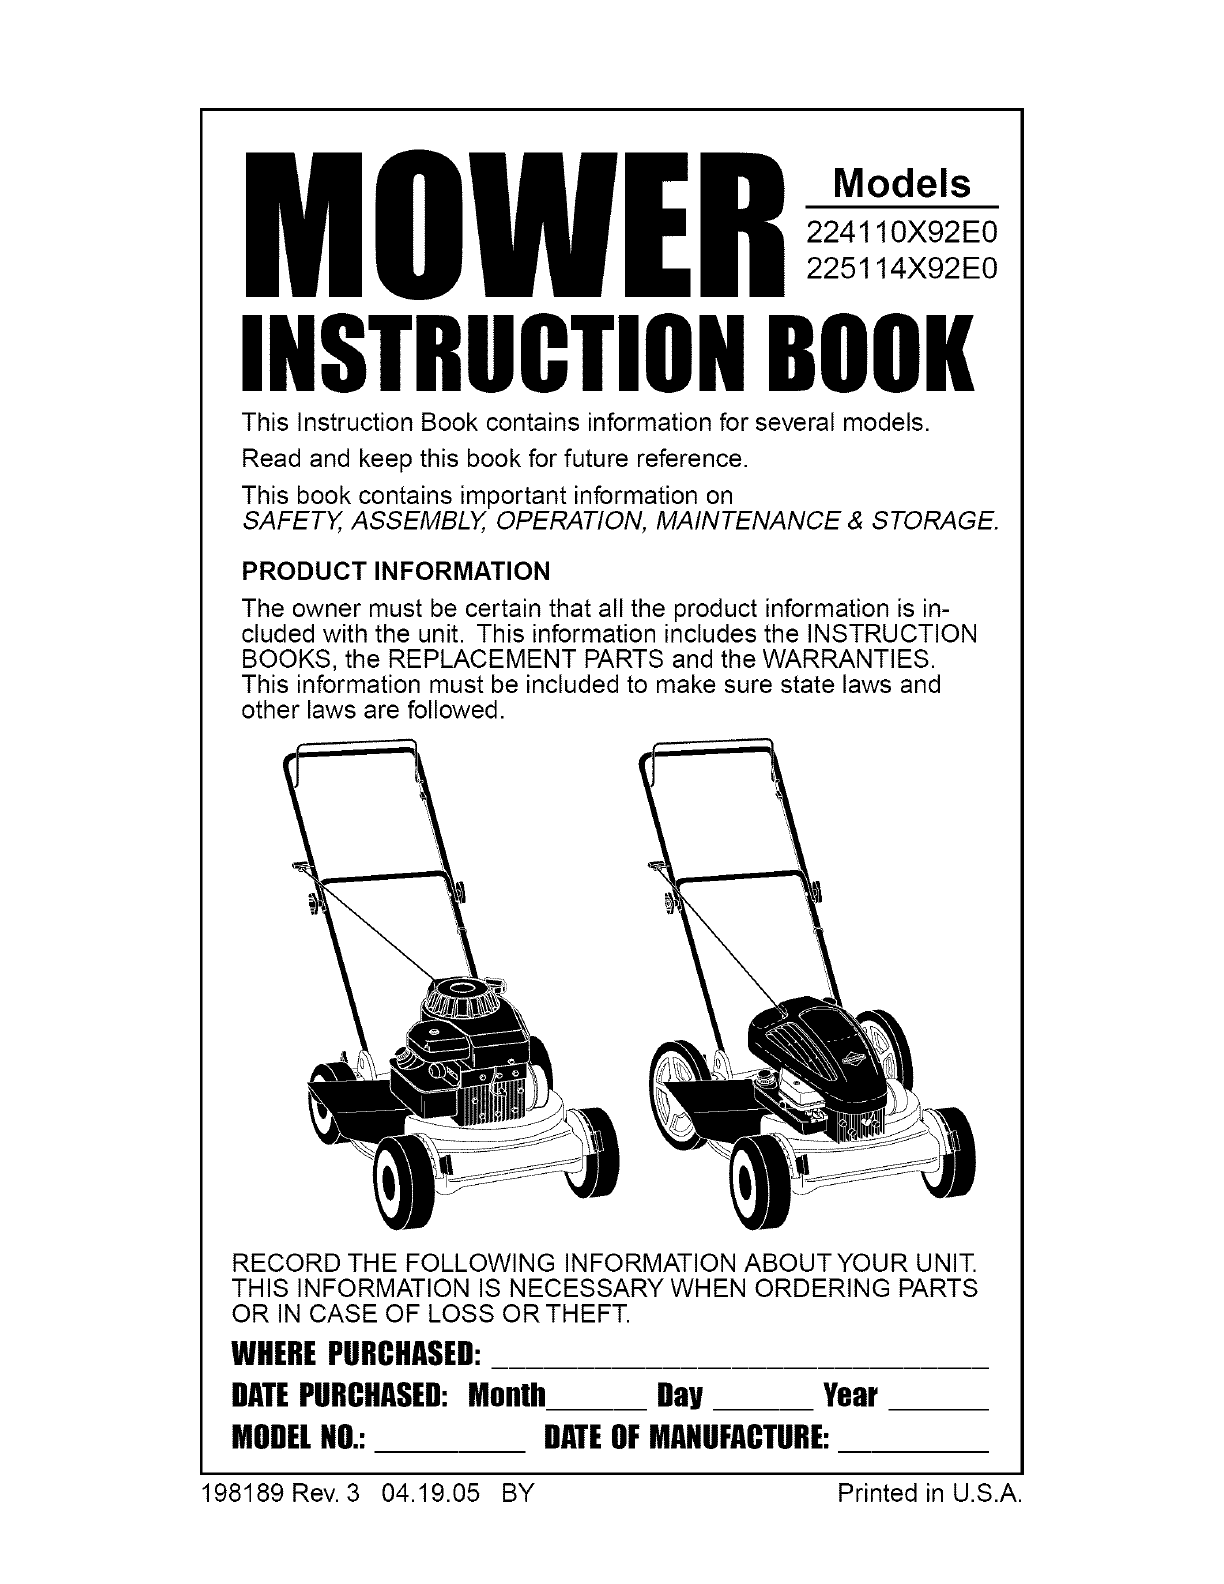 Murray 224110X92E0 User Manual MOWER Manuals And Guides L0504509 | Murray Lawn Mower Schematics |  | UserManual.wiki